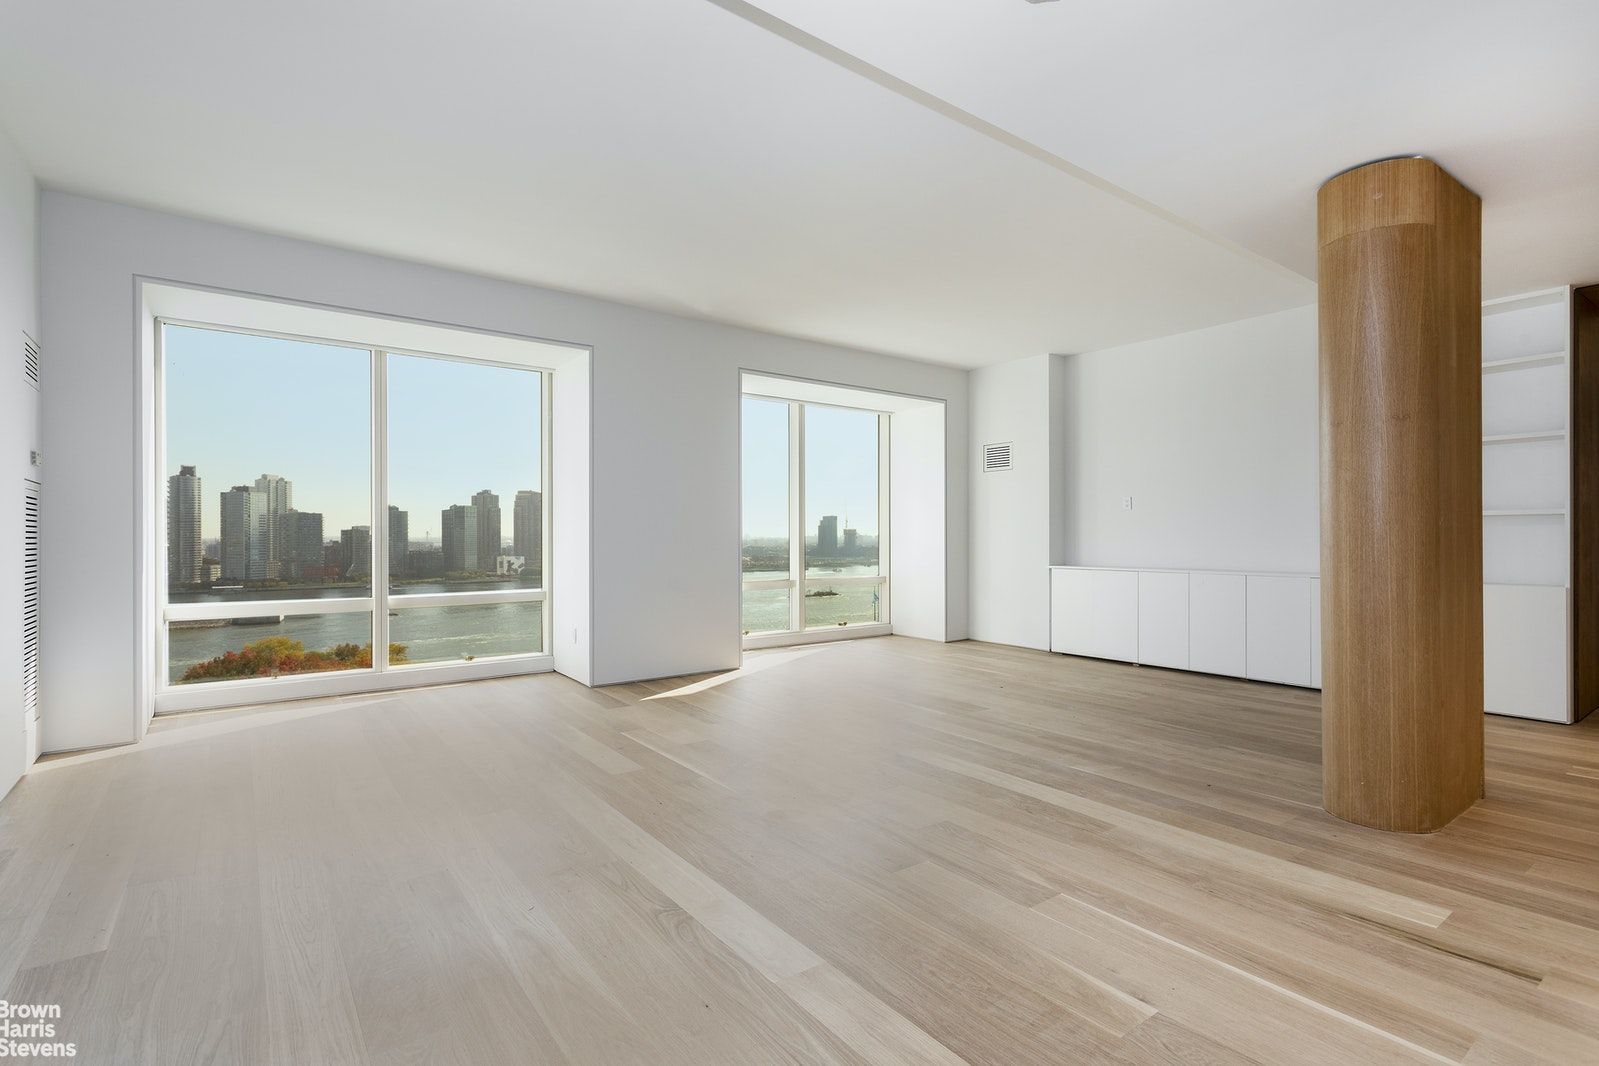 845 UNITED NATIONS PLAZA 17B, Midtown East, $3,995,000, Web #: 20151354